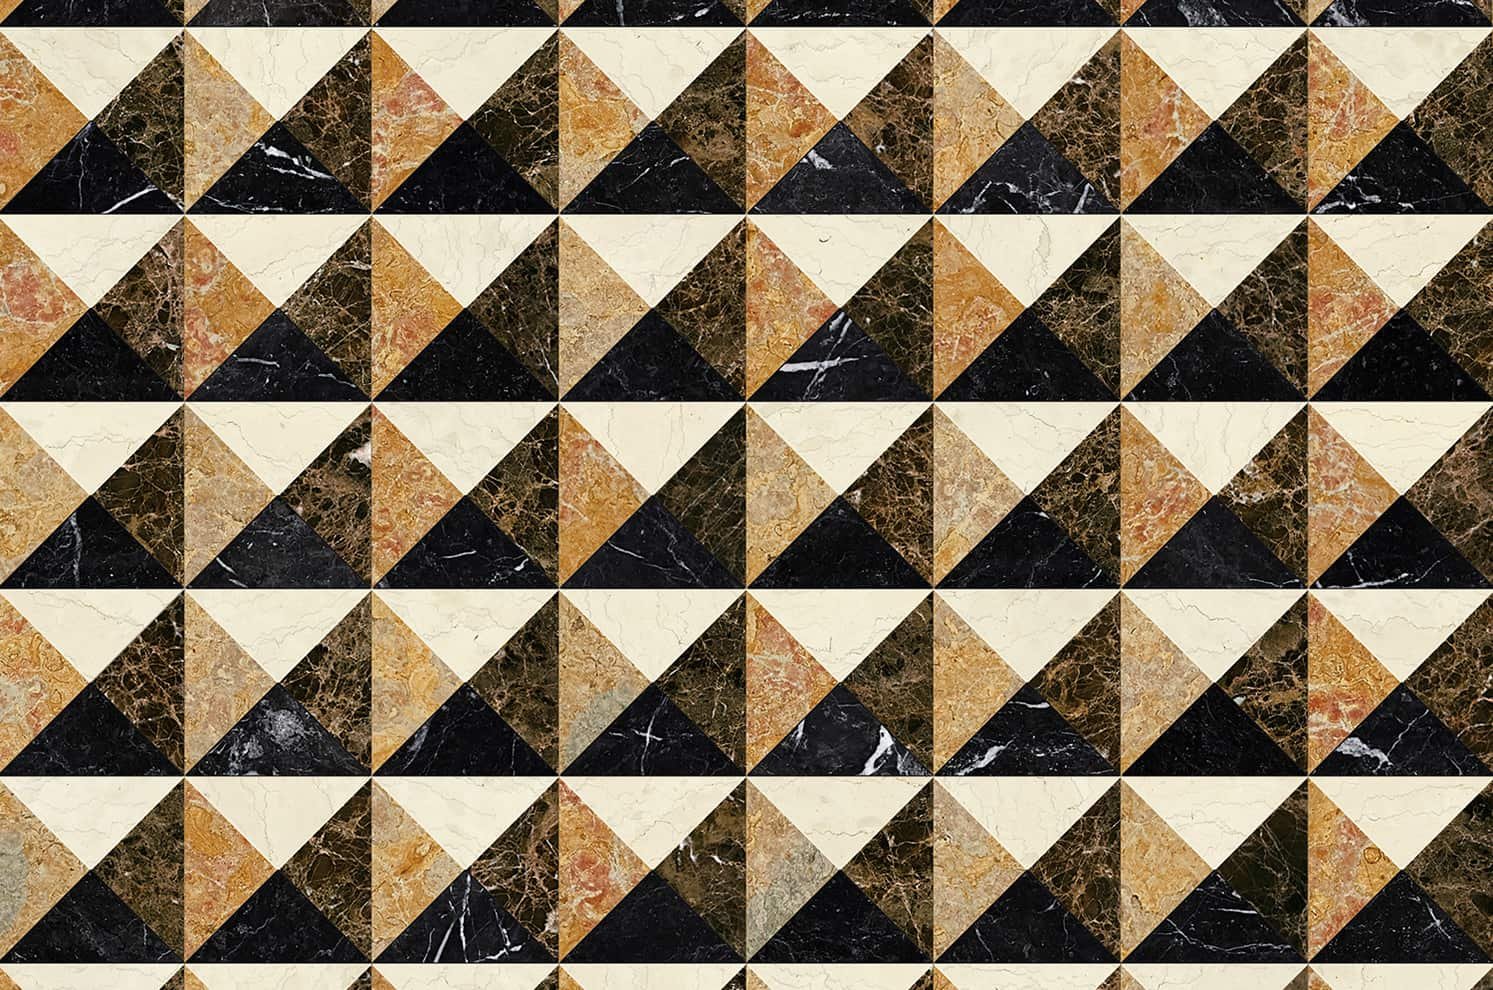 Motif Ardeatina Grano, collection Marmo, en marbre polychrome. 2 coloris. ©Bisazza